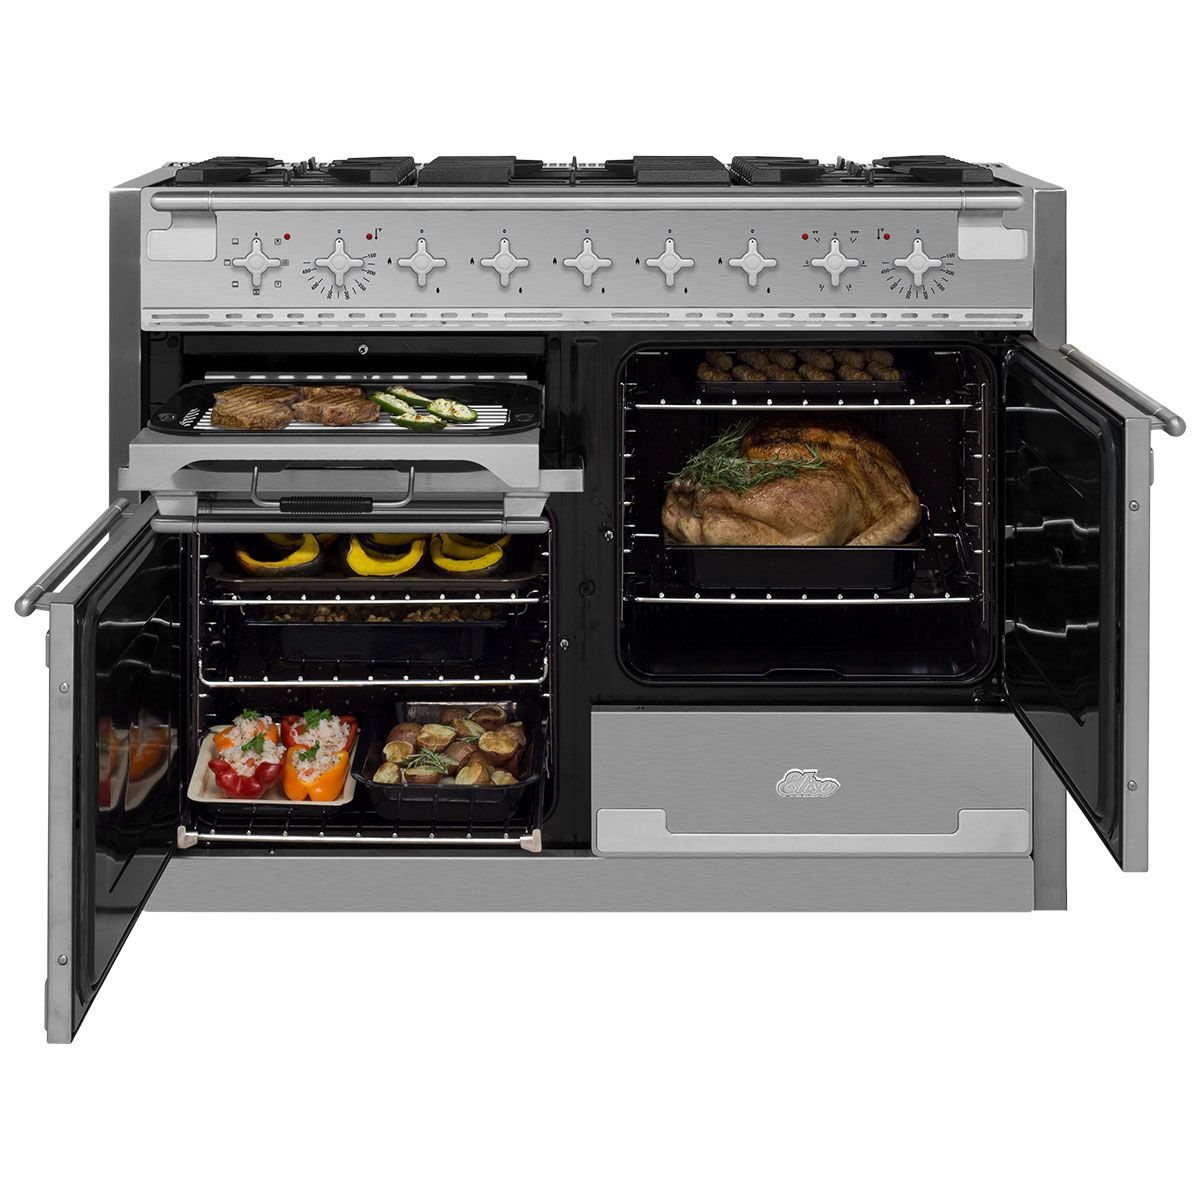 appliance buying guide why smaller ovens are actually better shown